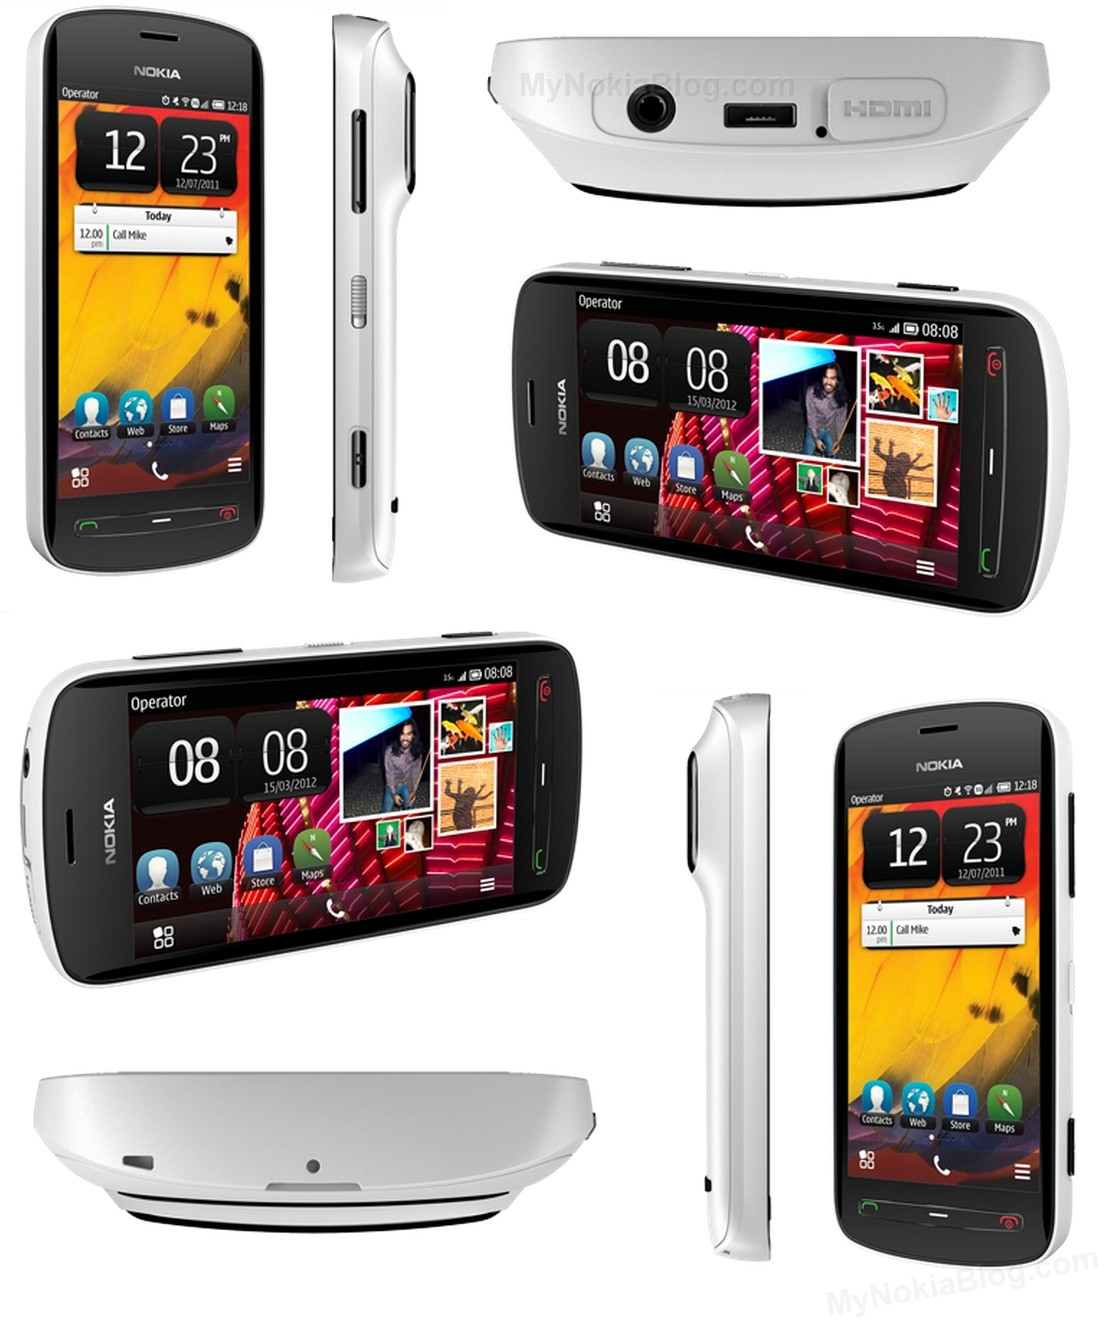 nokia-808-pureview-red-white-black7.jpg